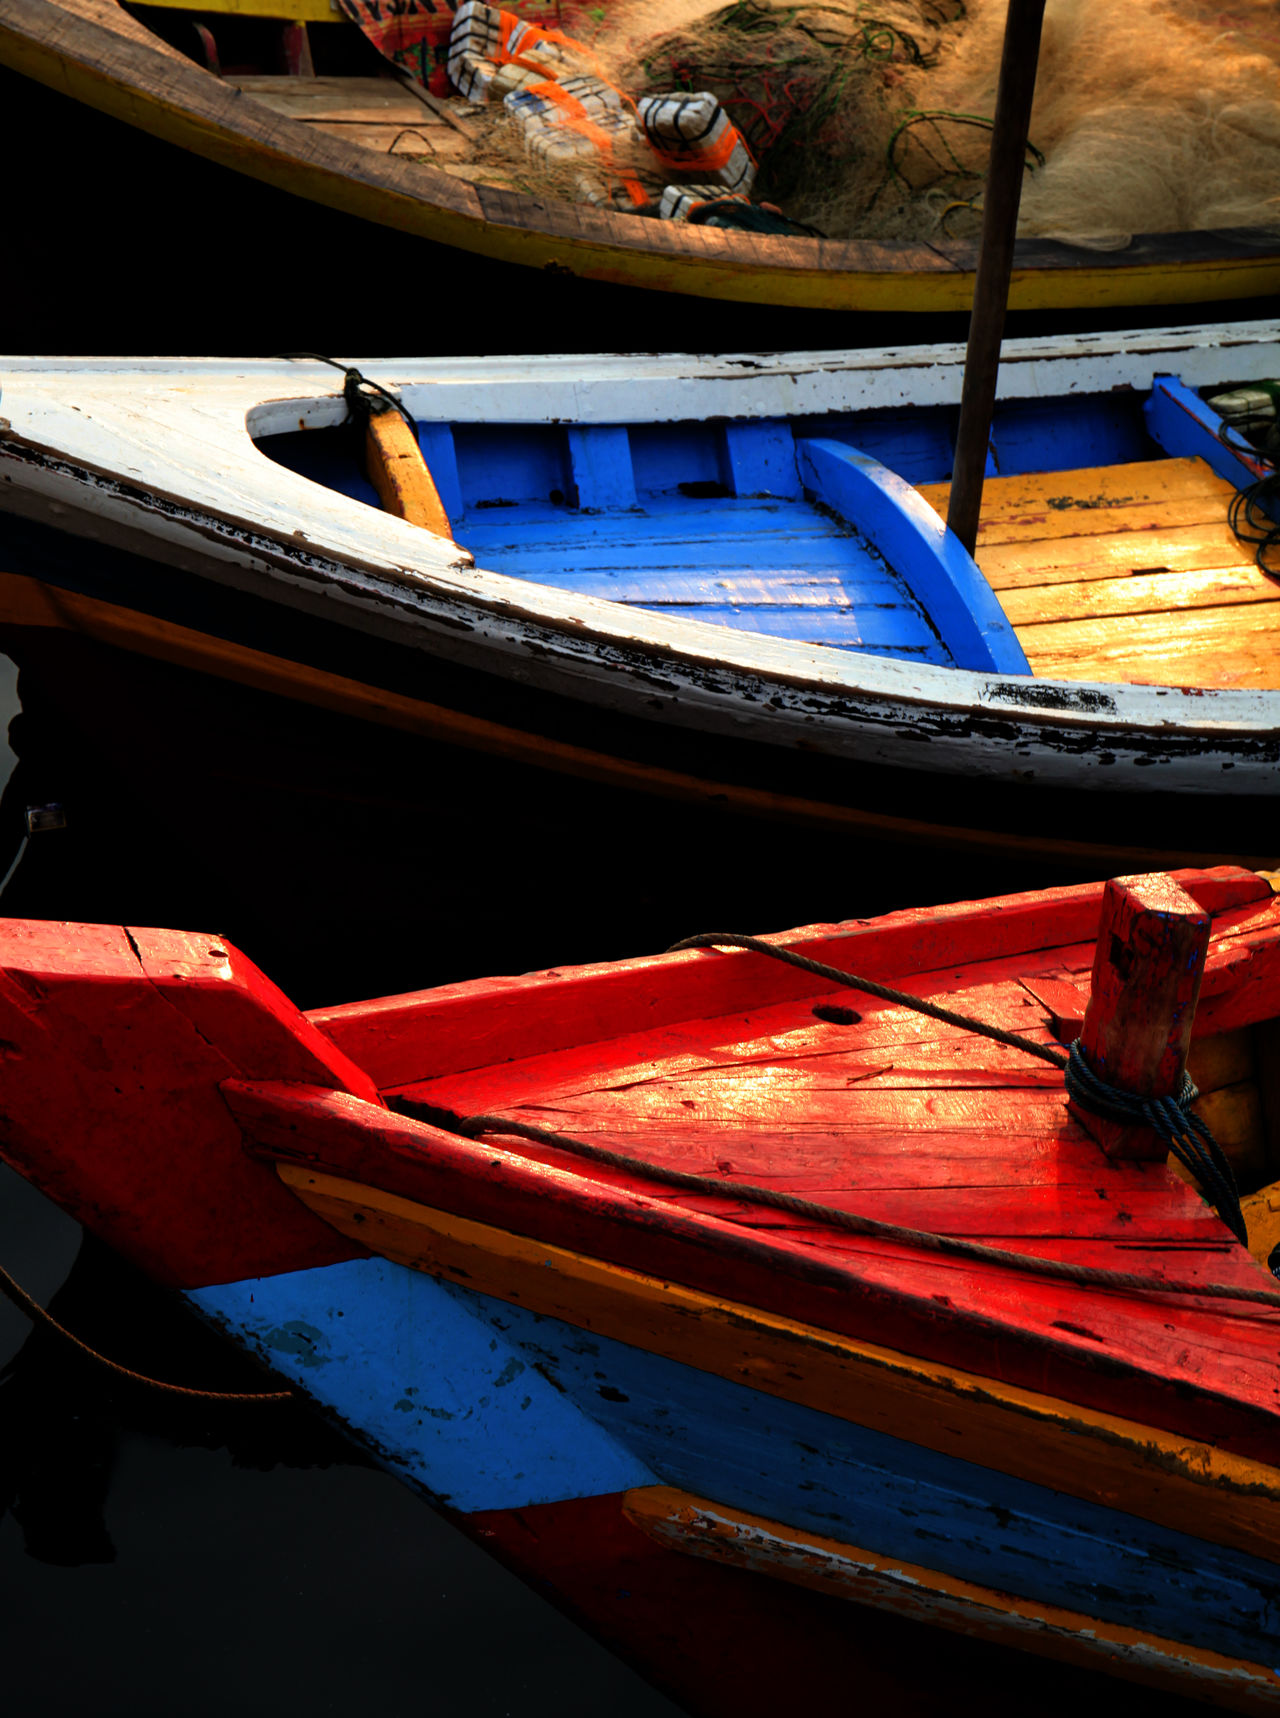 Raw Boat Boat Day Fishing Boat Gondola - Traditional Boat Mode Of Transport Moored Nautical Vessel No People Outdoors Parking Red Rowboat Still Life Transportation Vertical Water